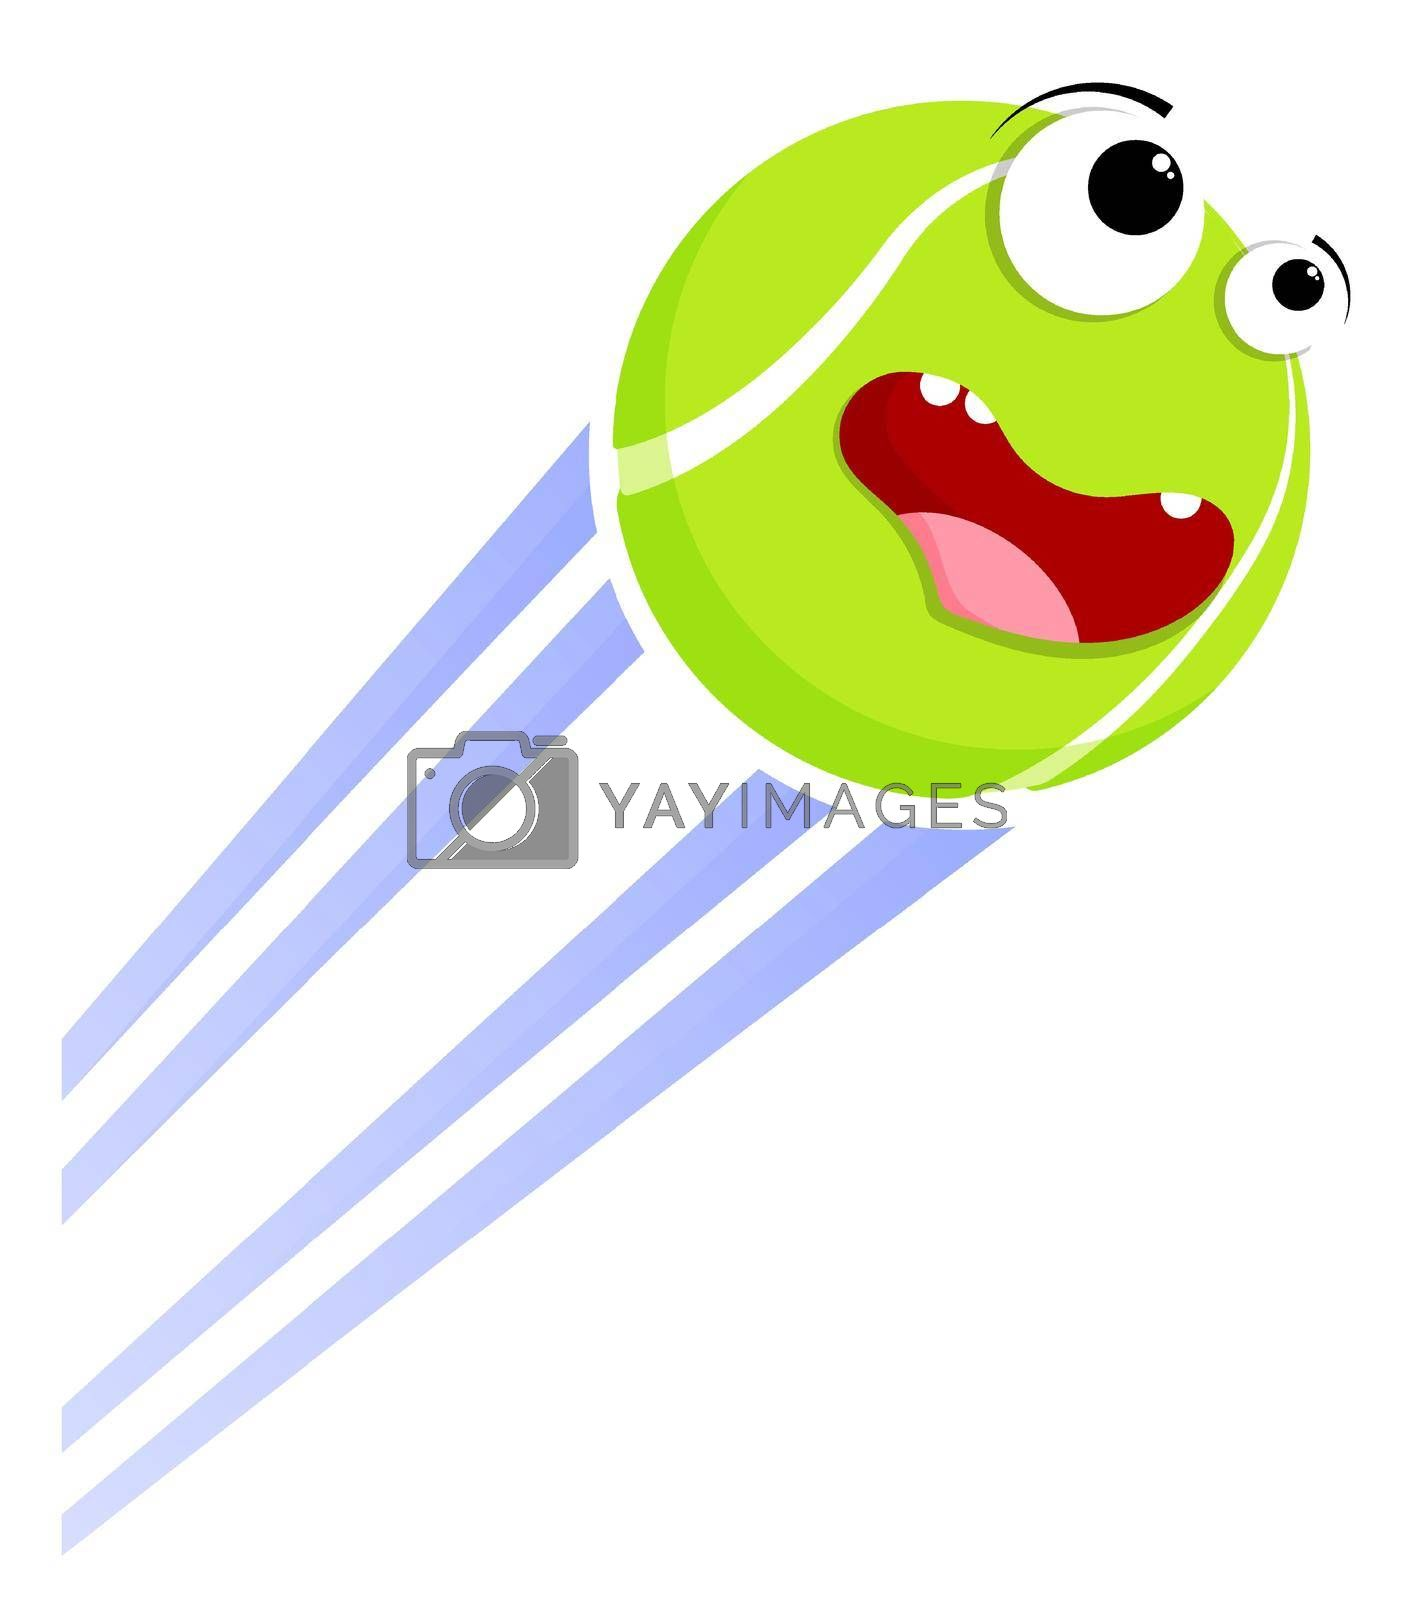 Loud funny crazy tennis ball flies with great speed after great hit. Sport equipment. Vector